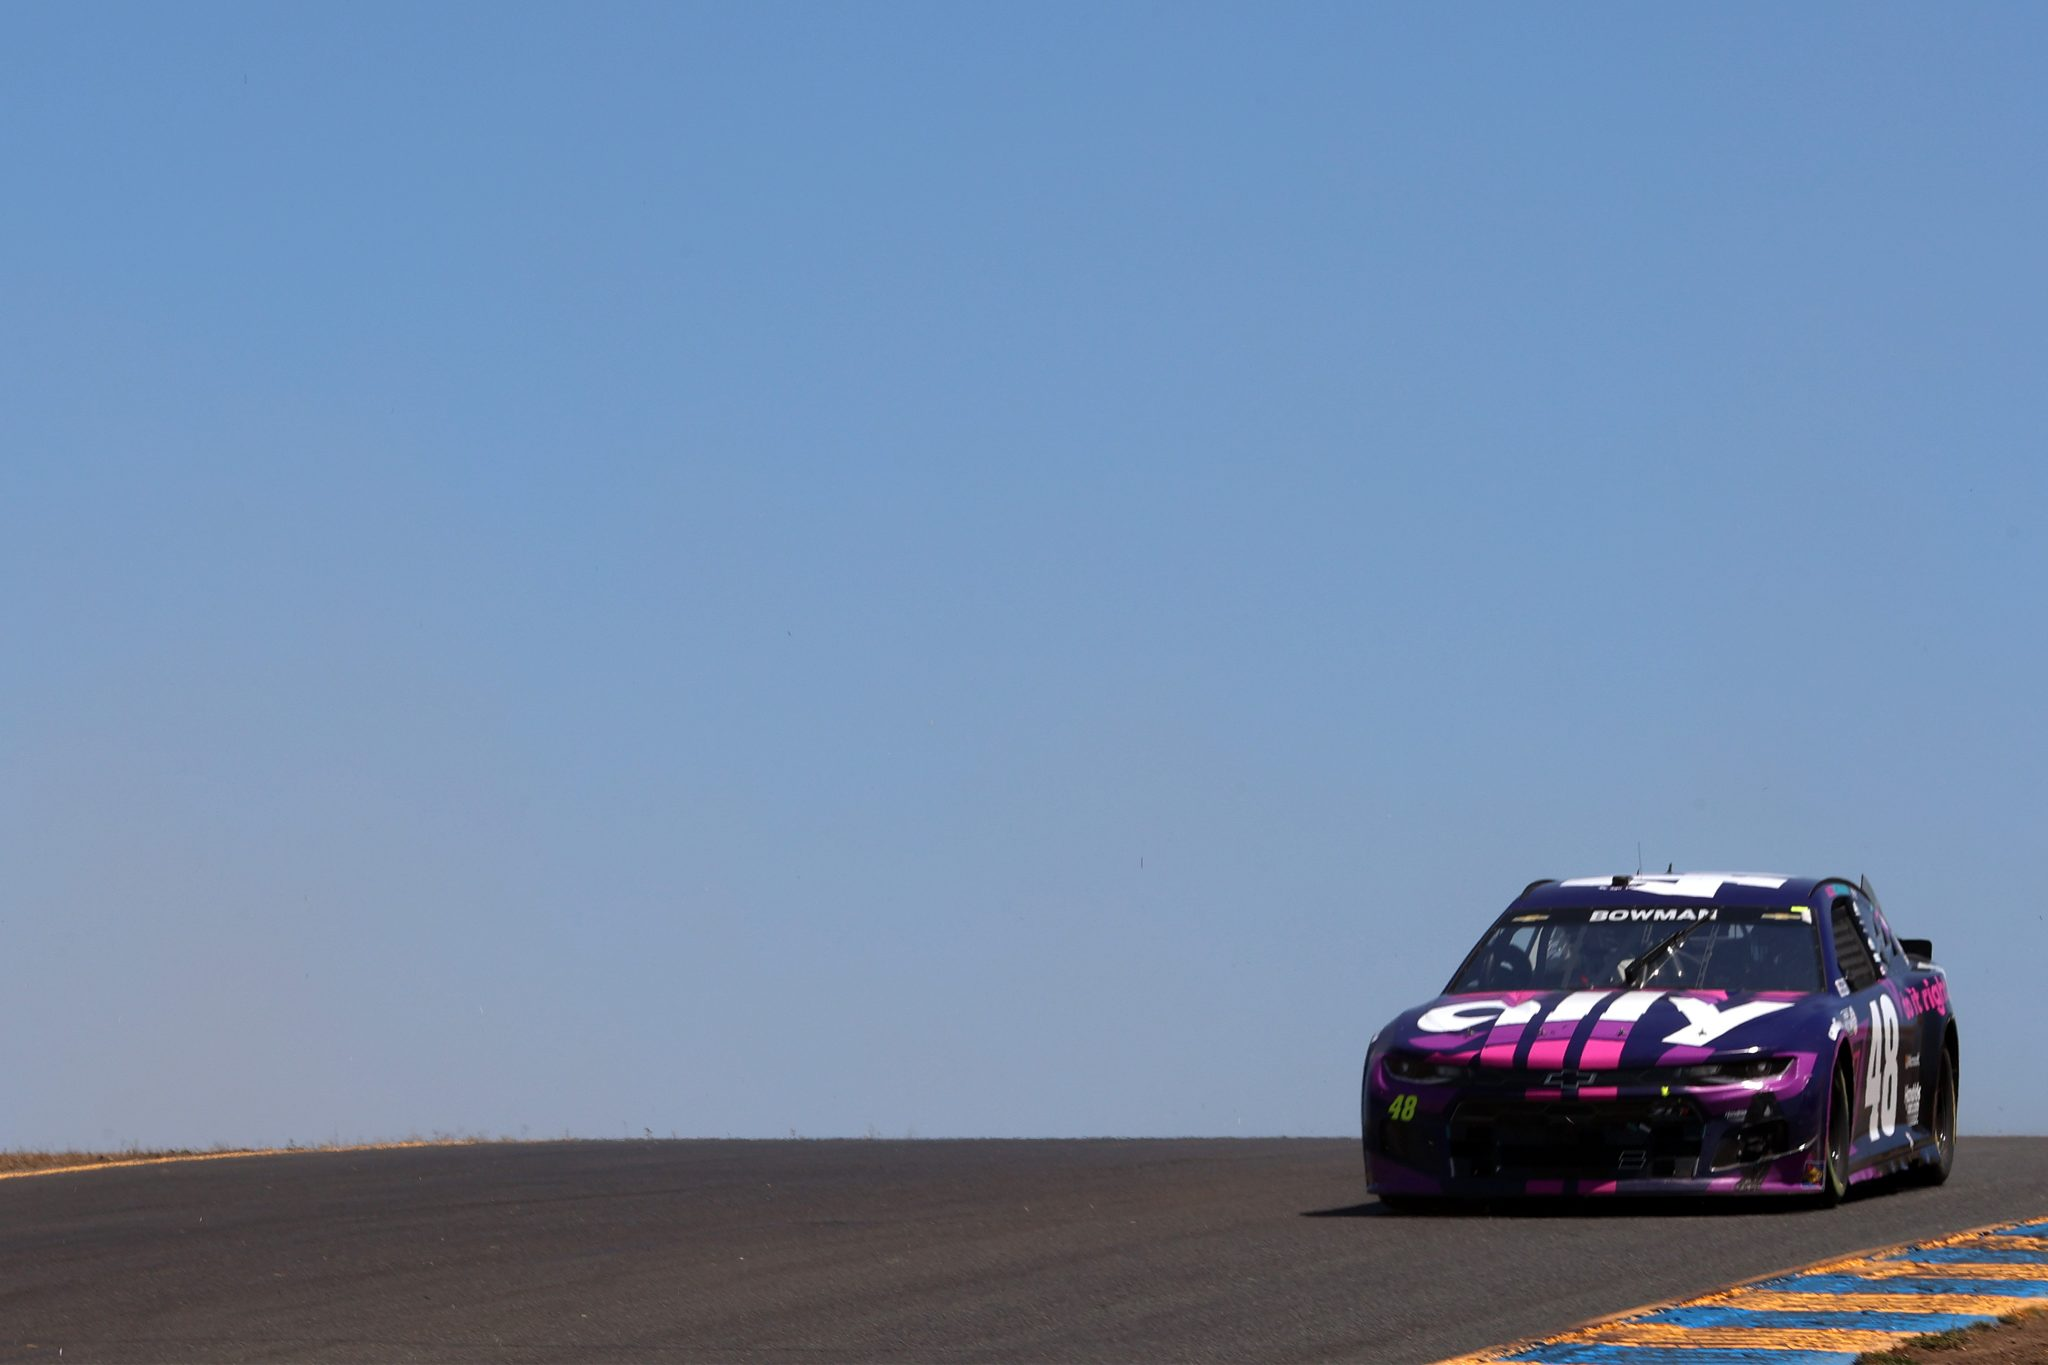 SONOMA, CALIFORNIA - JUNE 06: Alex Bowman, driver of the #48 Ally Chevrolet, drives during the NASCAR Cup Series Toyota/Save Mart 350 at Sonoma Raceway on June 06, 2021 in Sonoma, California. (Photo by Carmen Mandato/Getty Images) | Getty Images